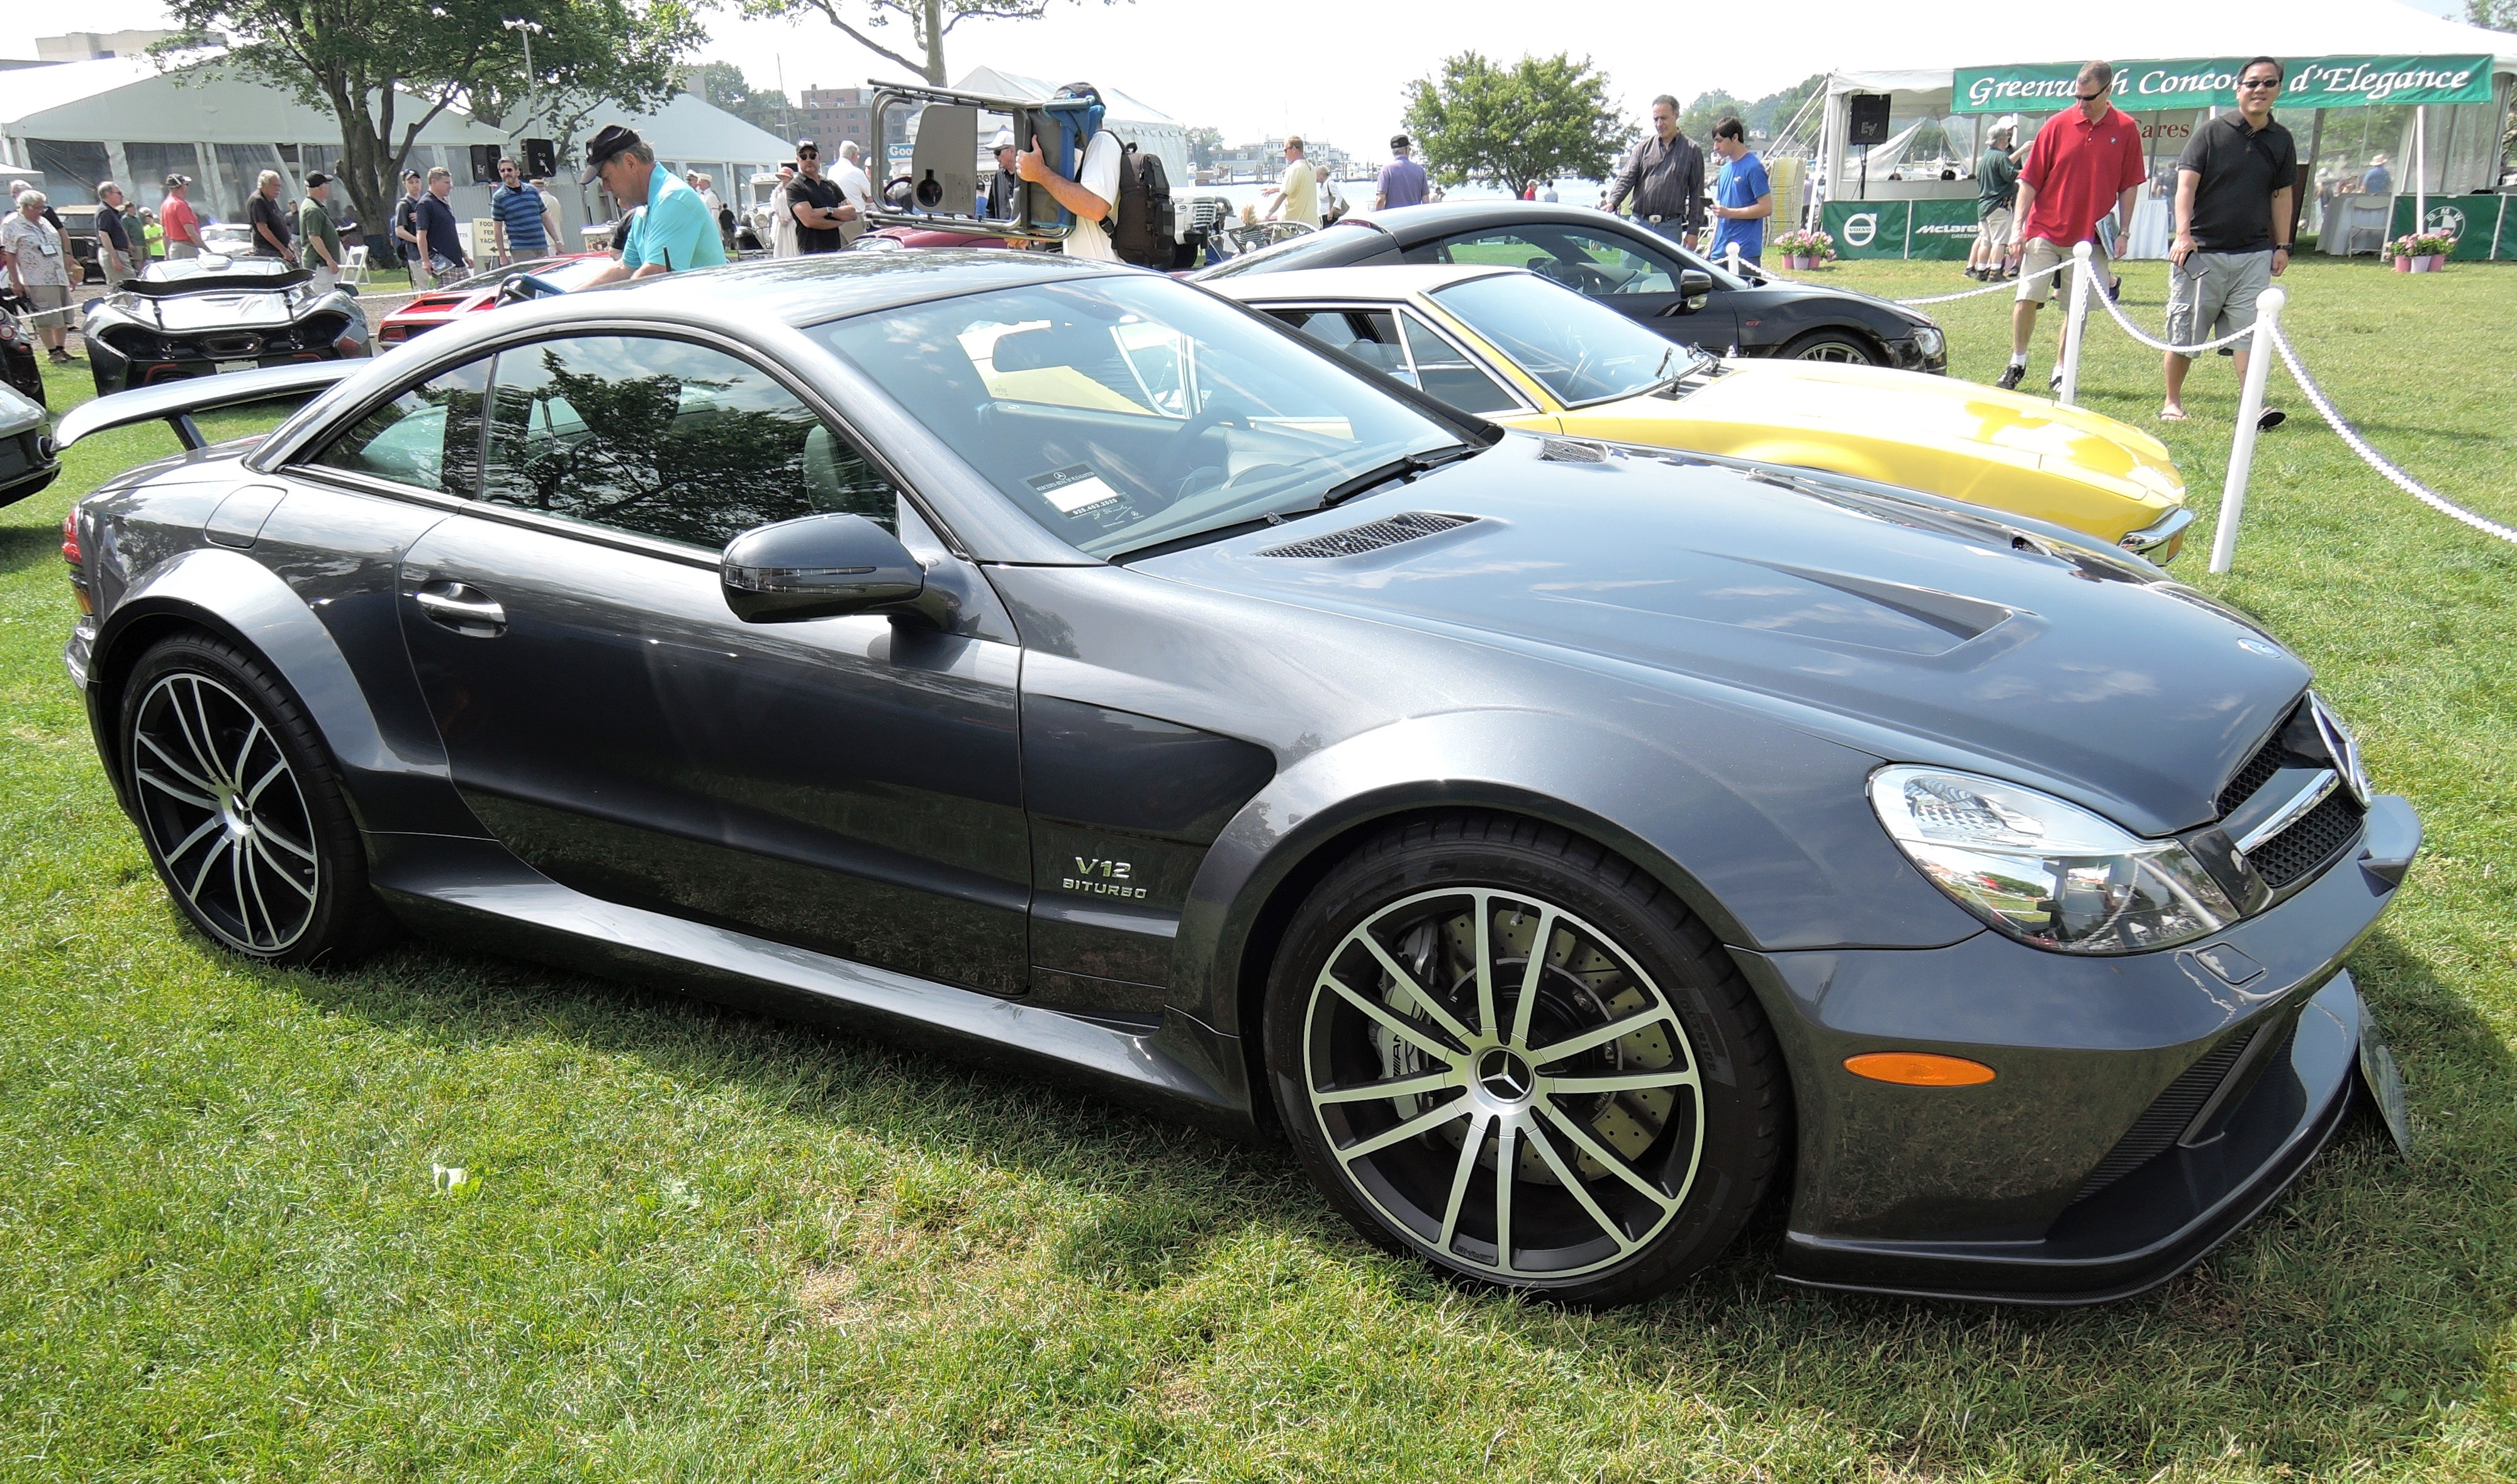 black 2009 Mercedes-Benz SL 65 Black Series - greenwich concours